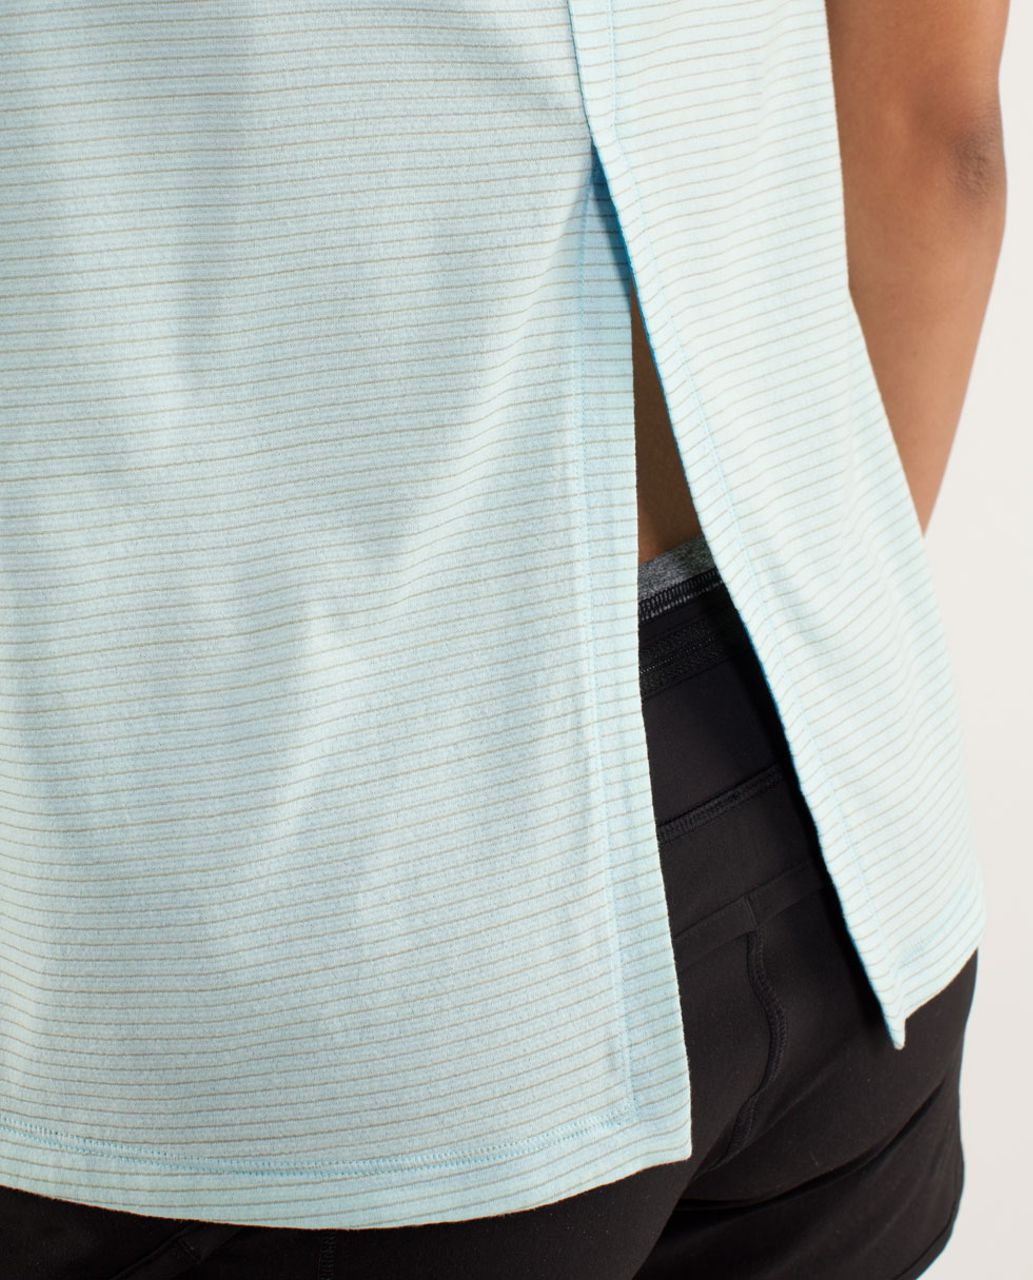 Lululemon Run:  Silver Lining Tank - Beach Blanket Blue / Aquamarine